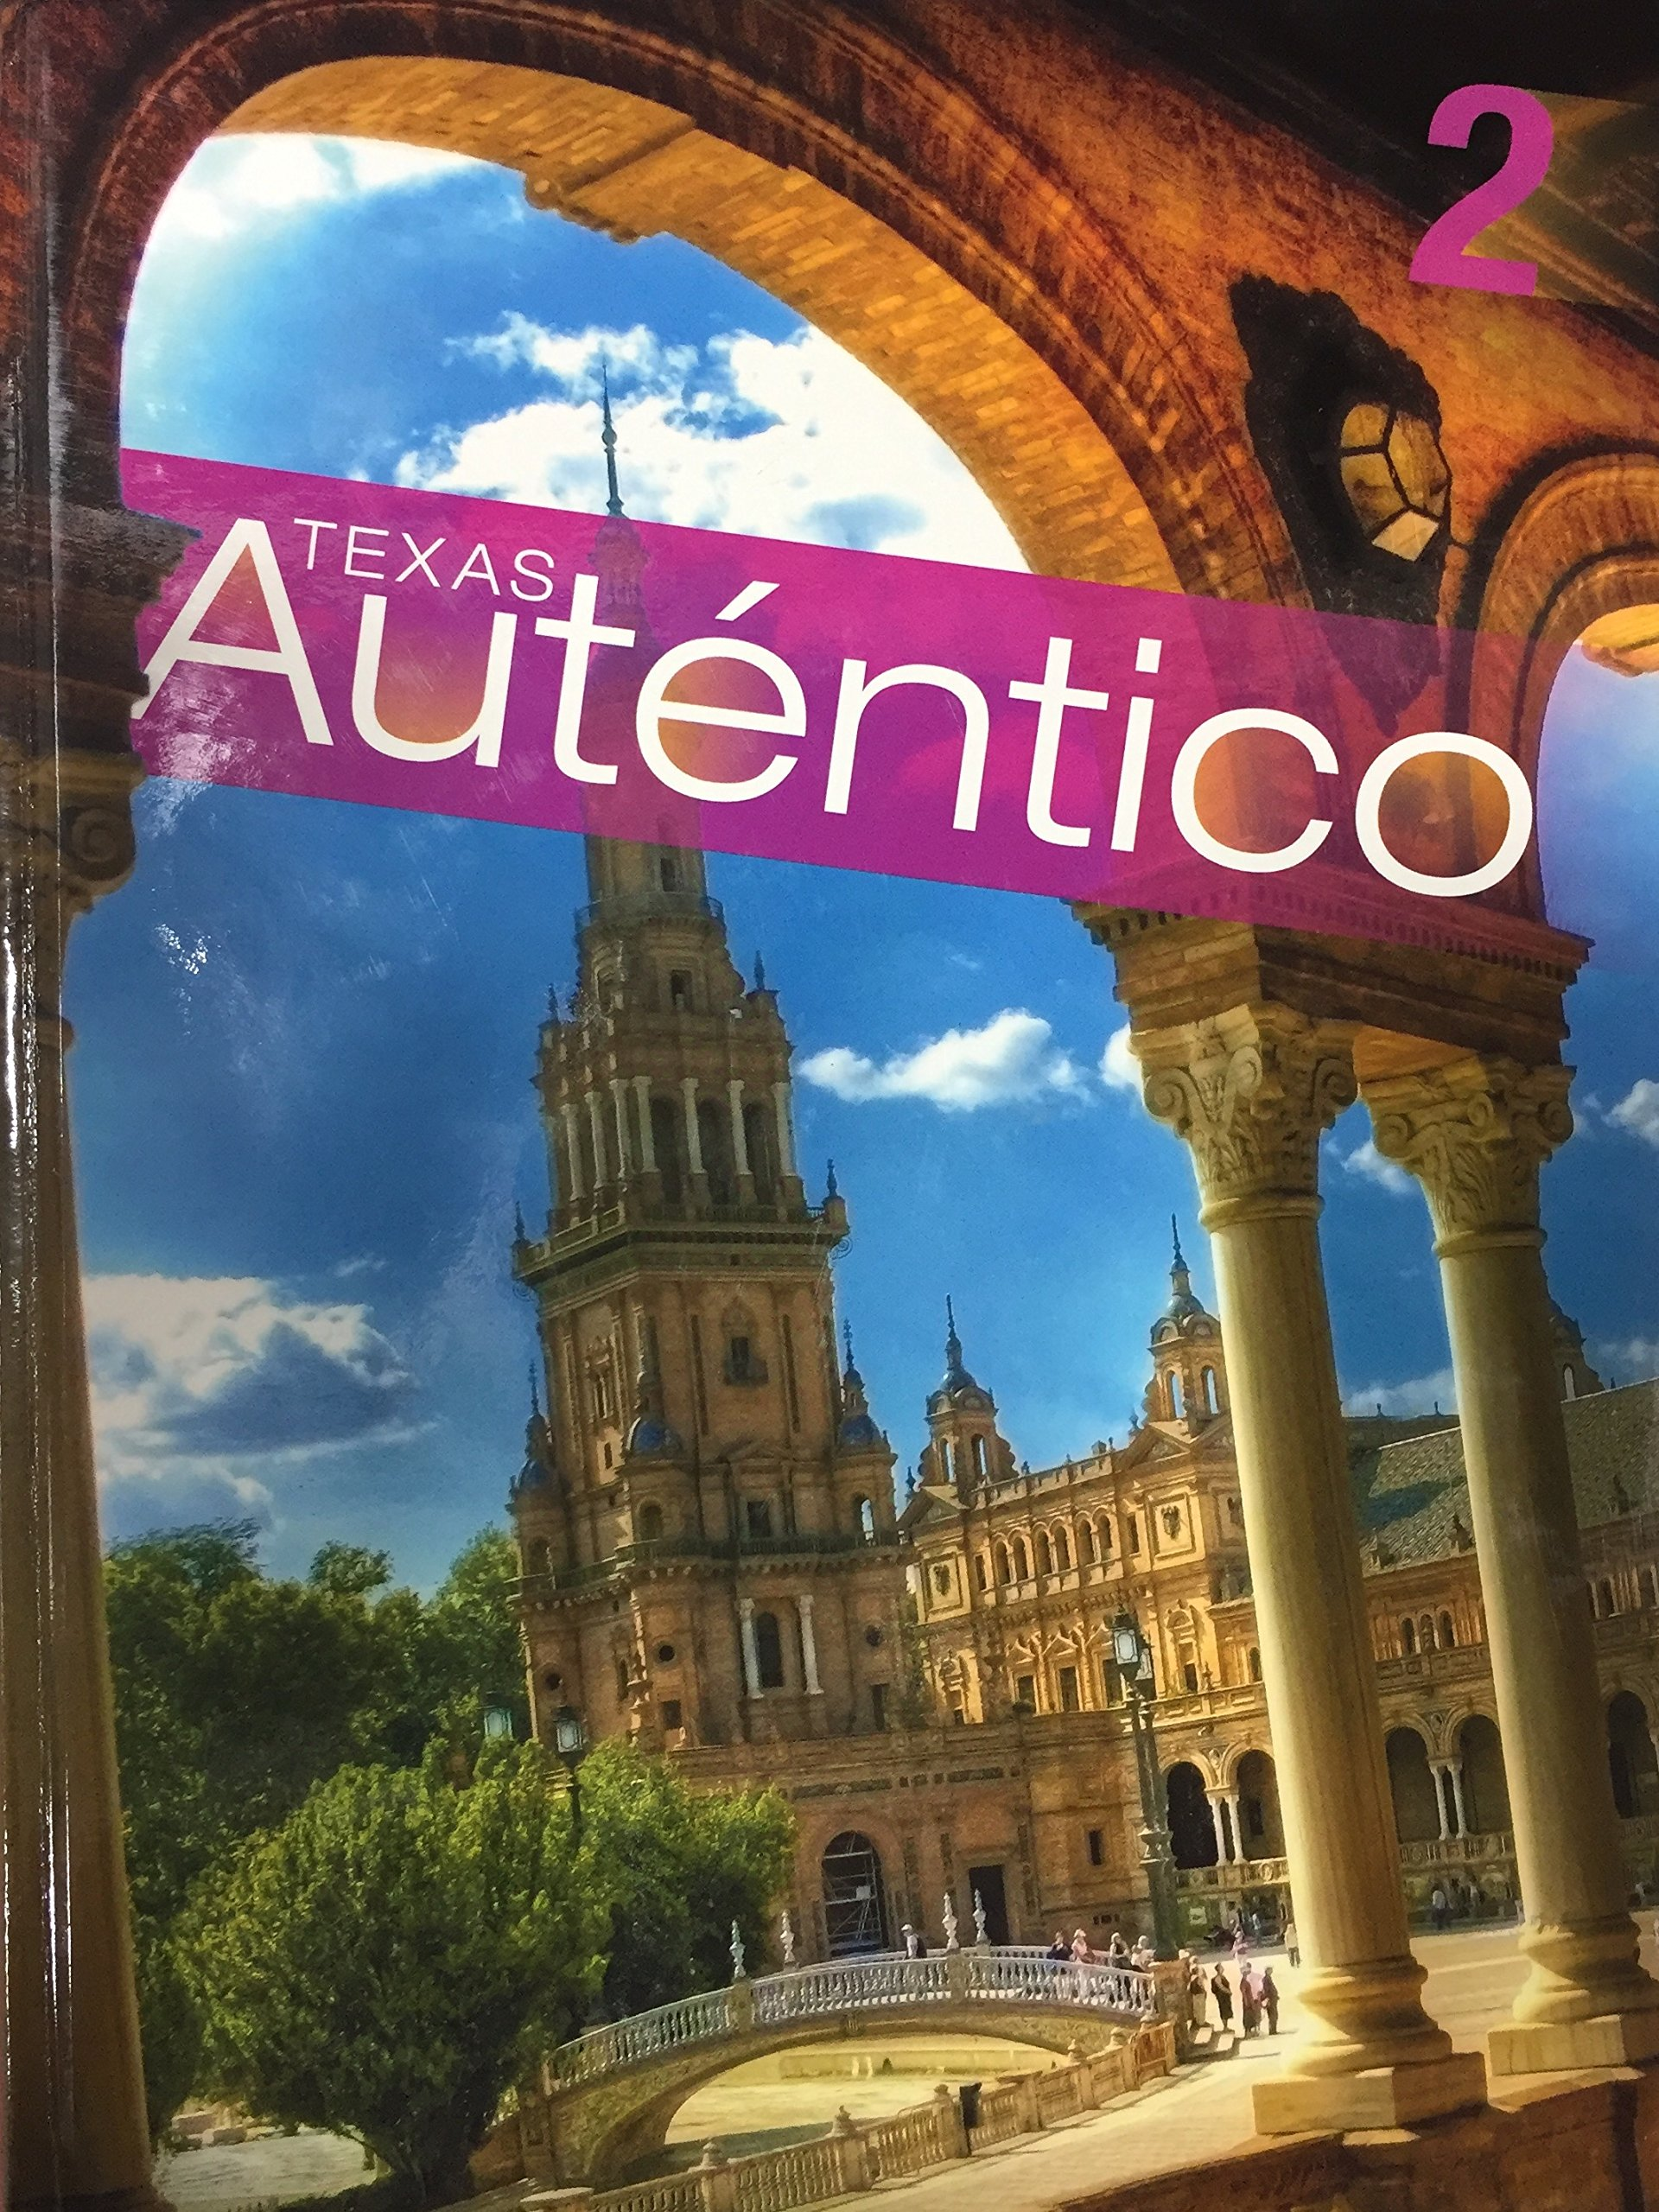 Book cover of Texas Auténtico. It has an arch and a steeple.